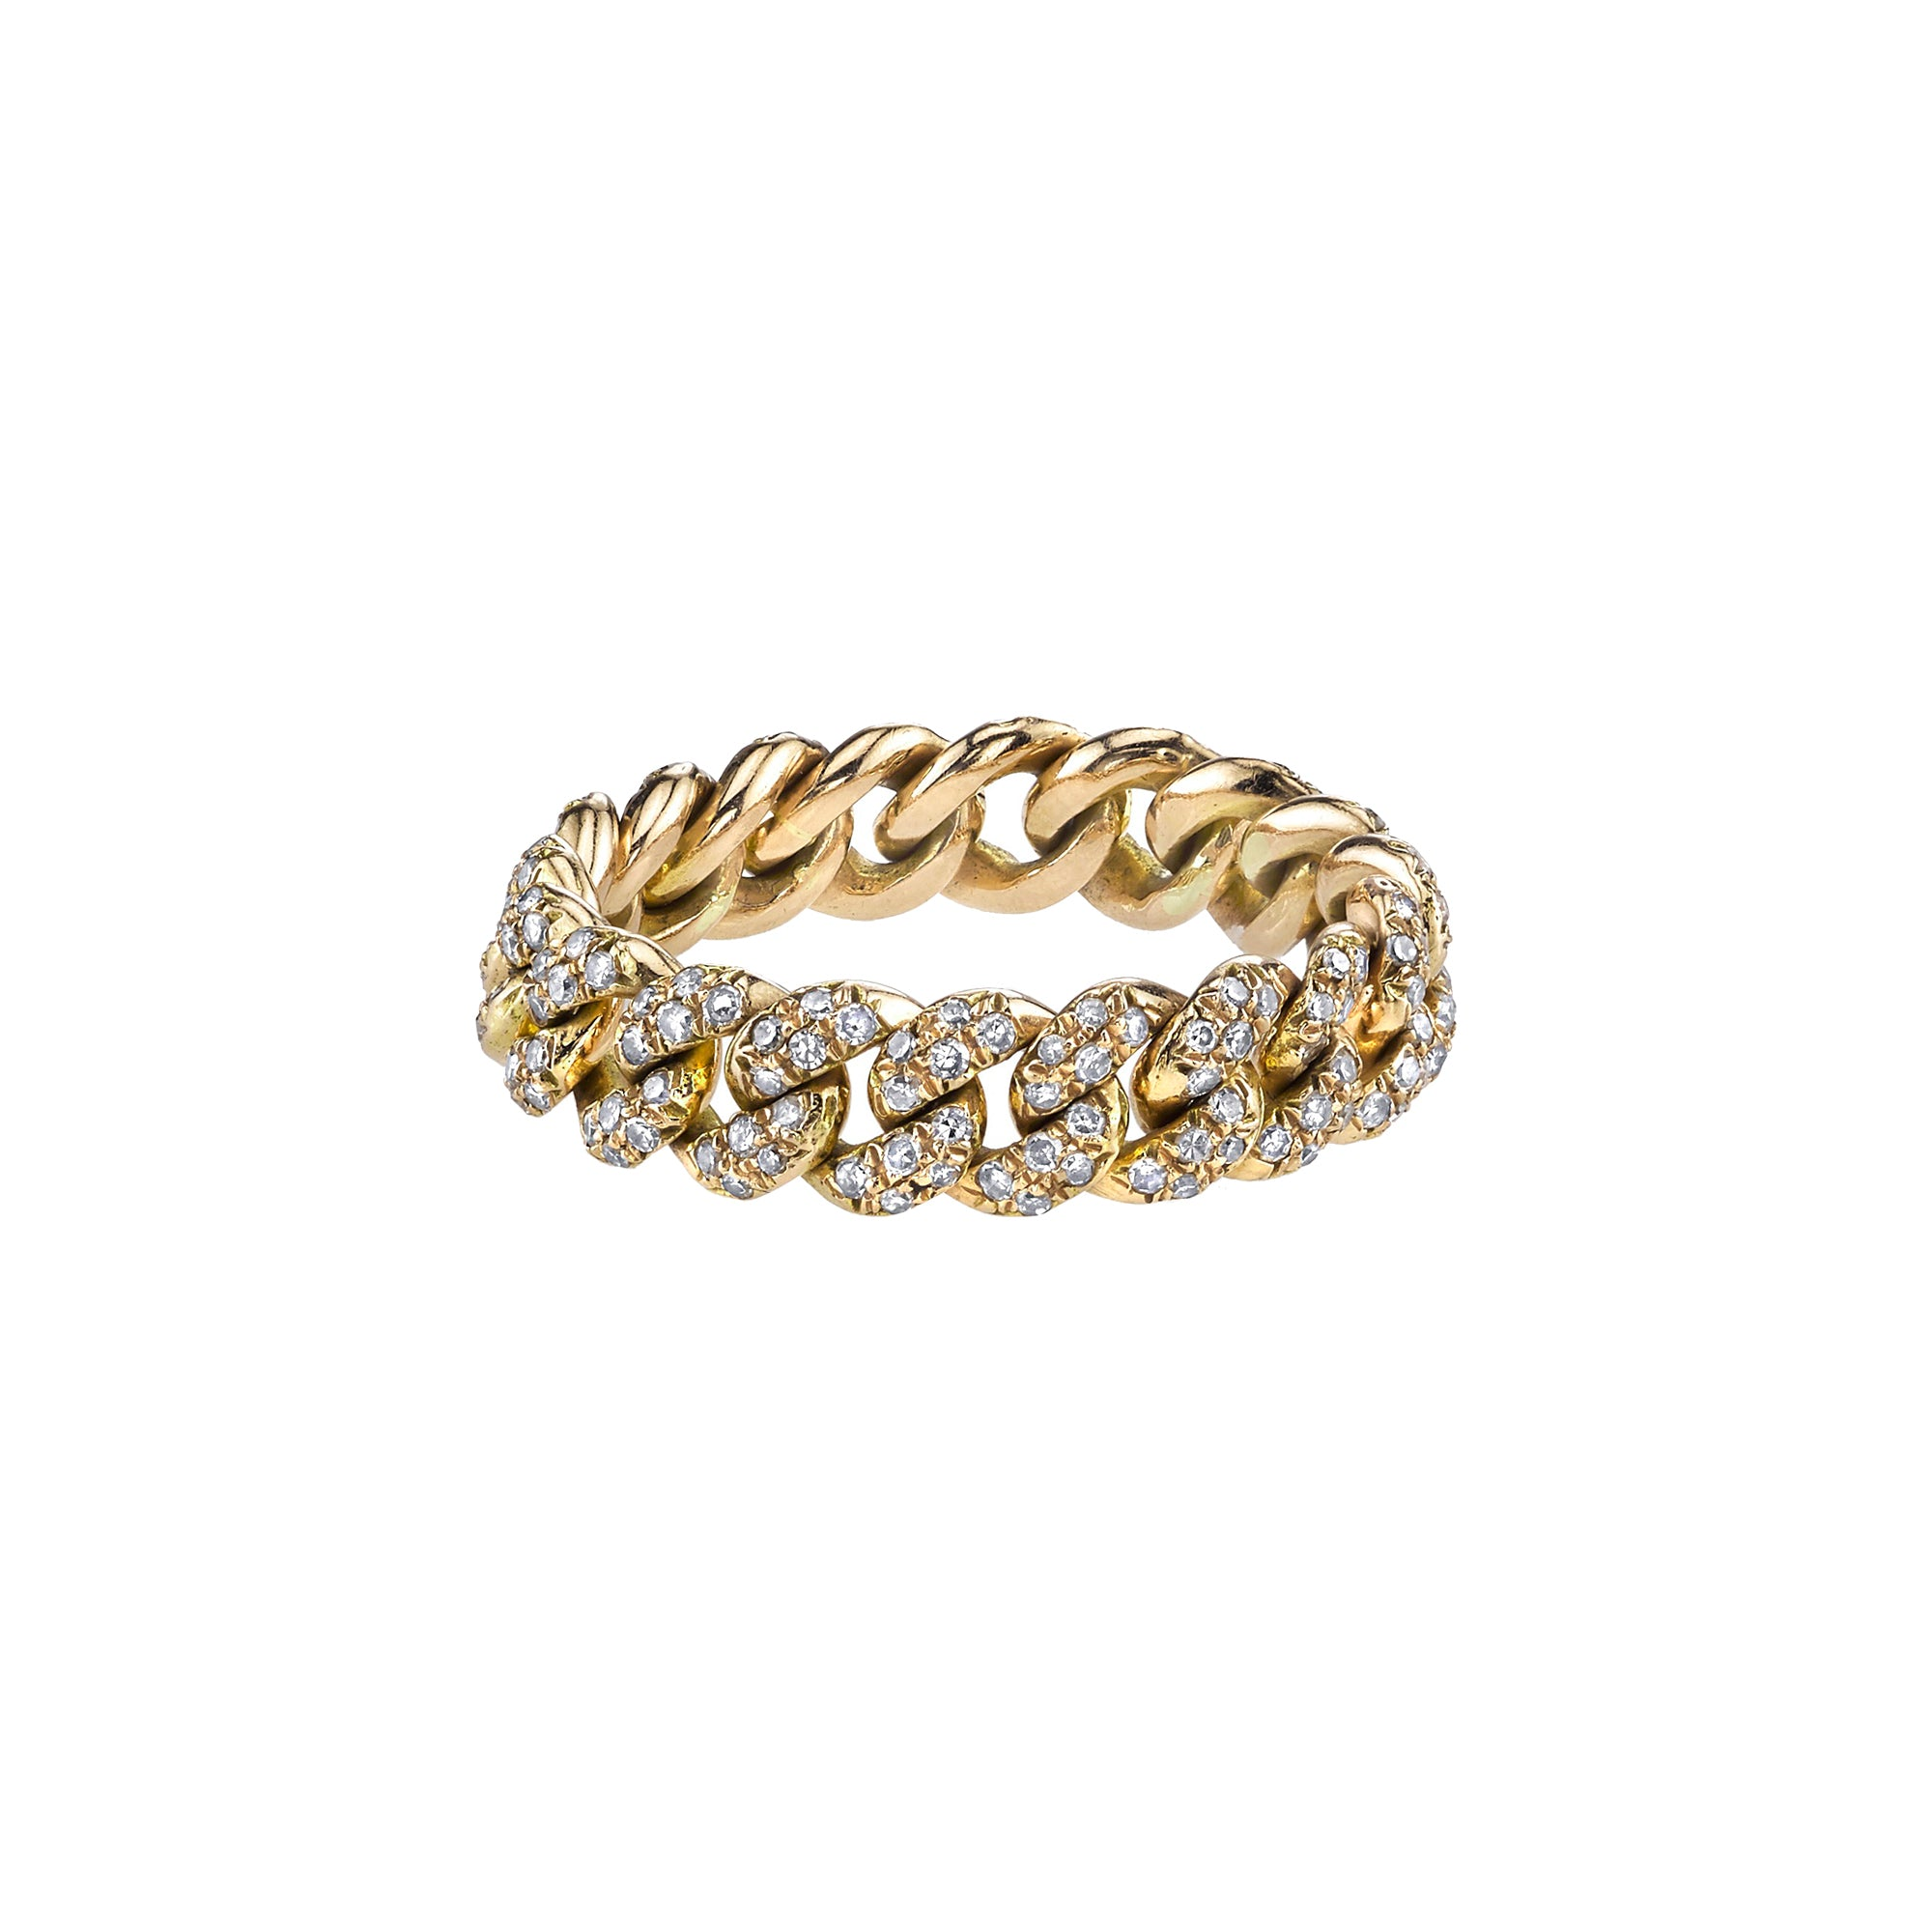 Shay Mini Pave Link Ring - Gold - Rings - Broken English Jewelry